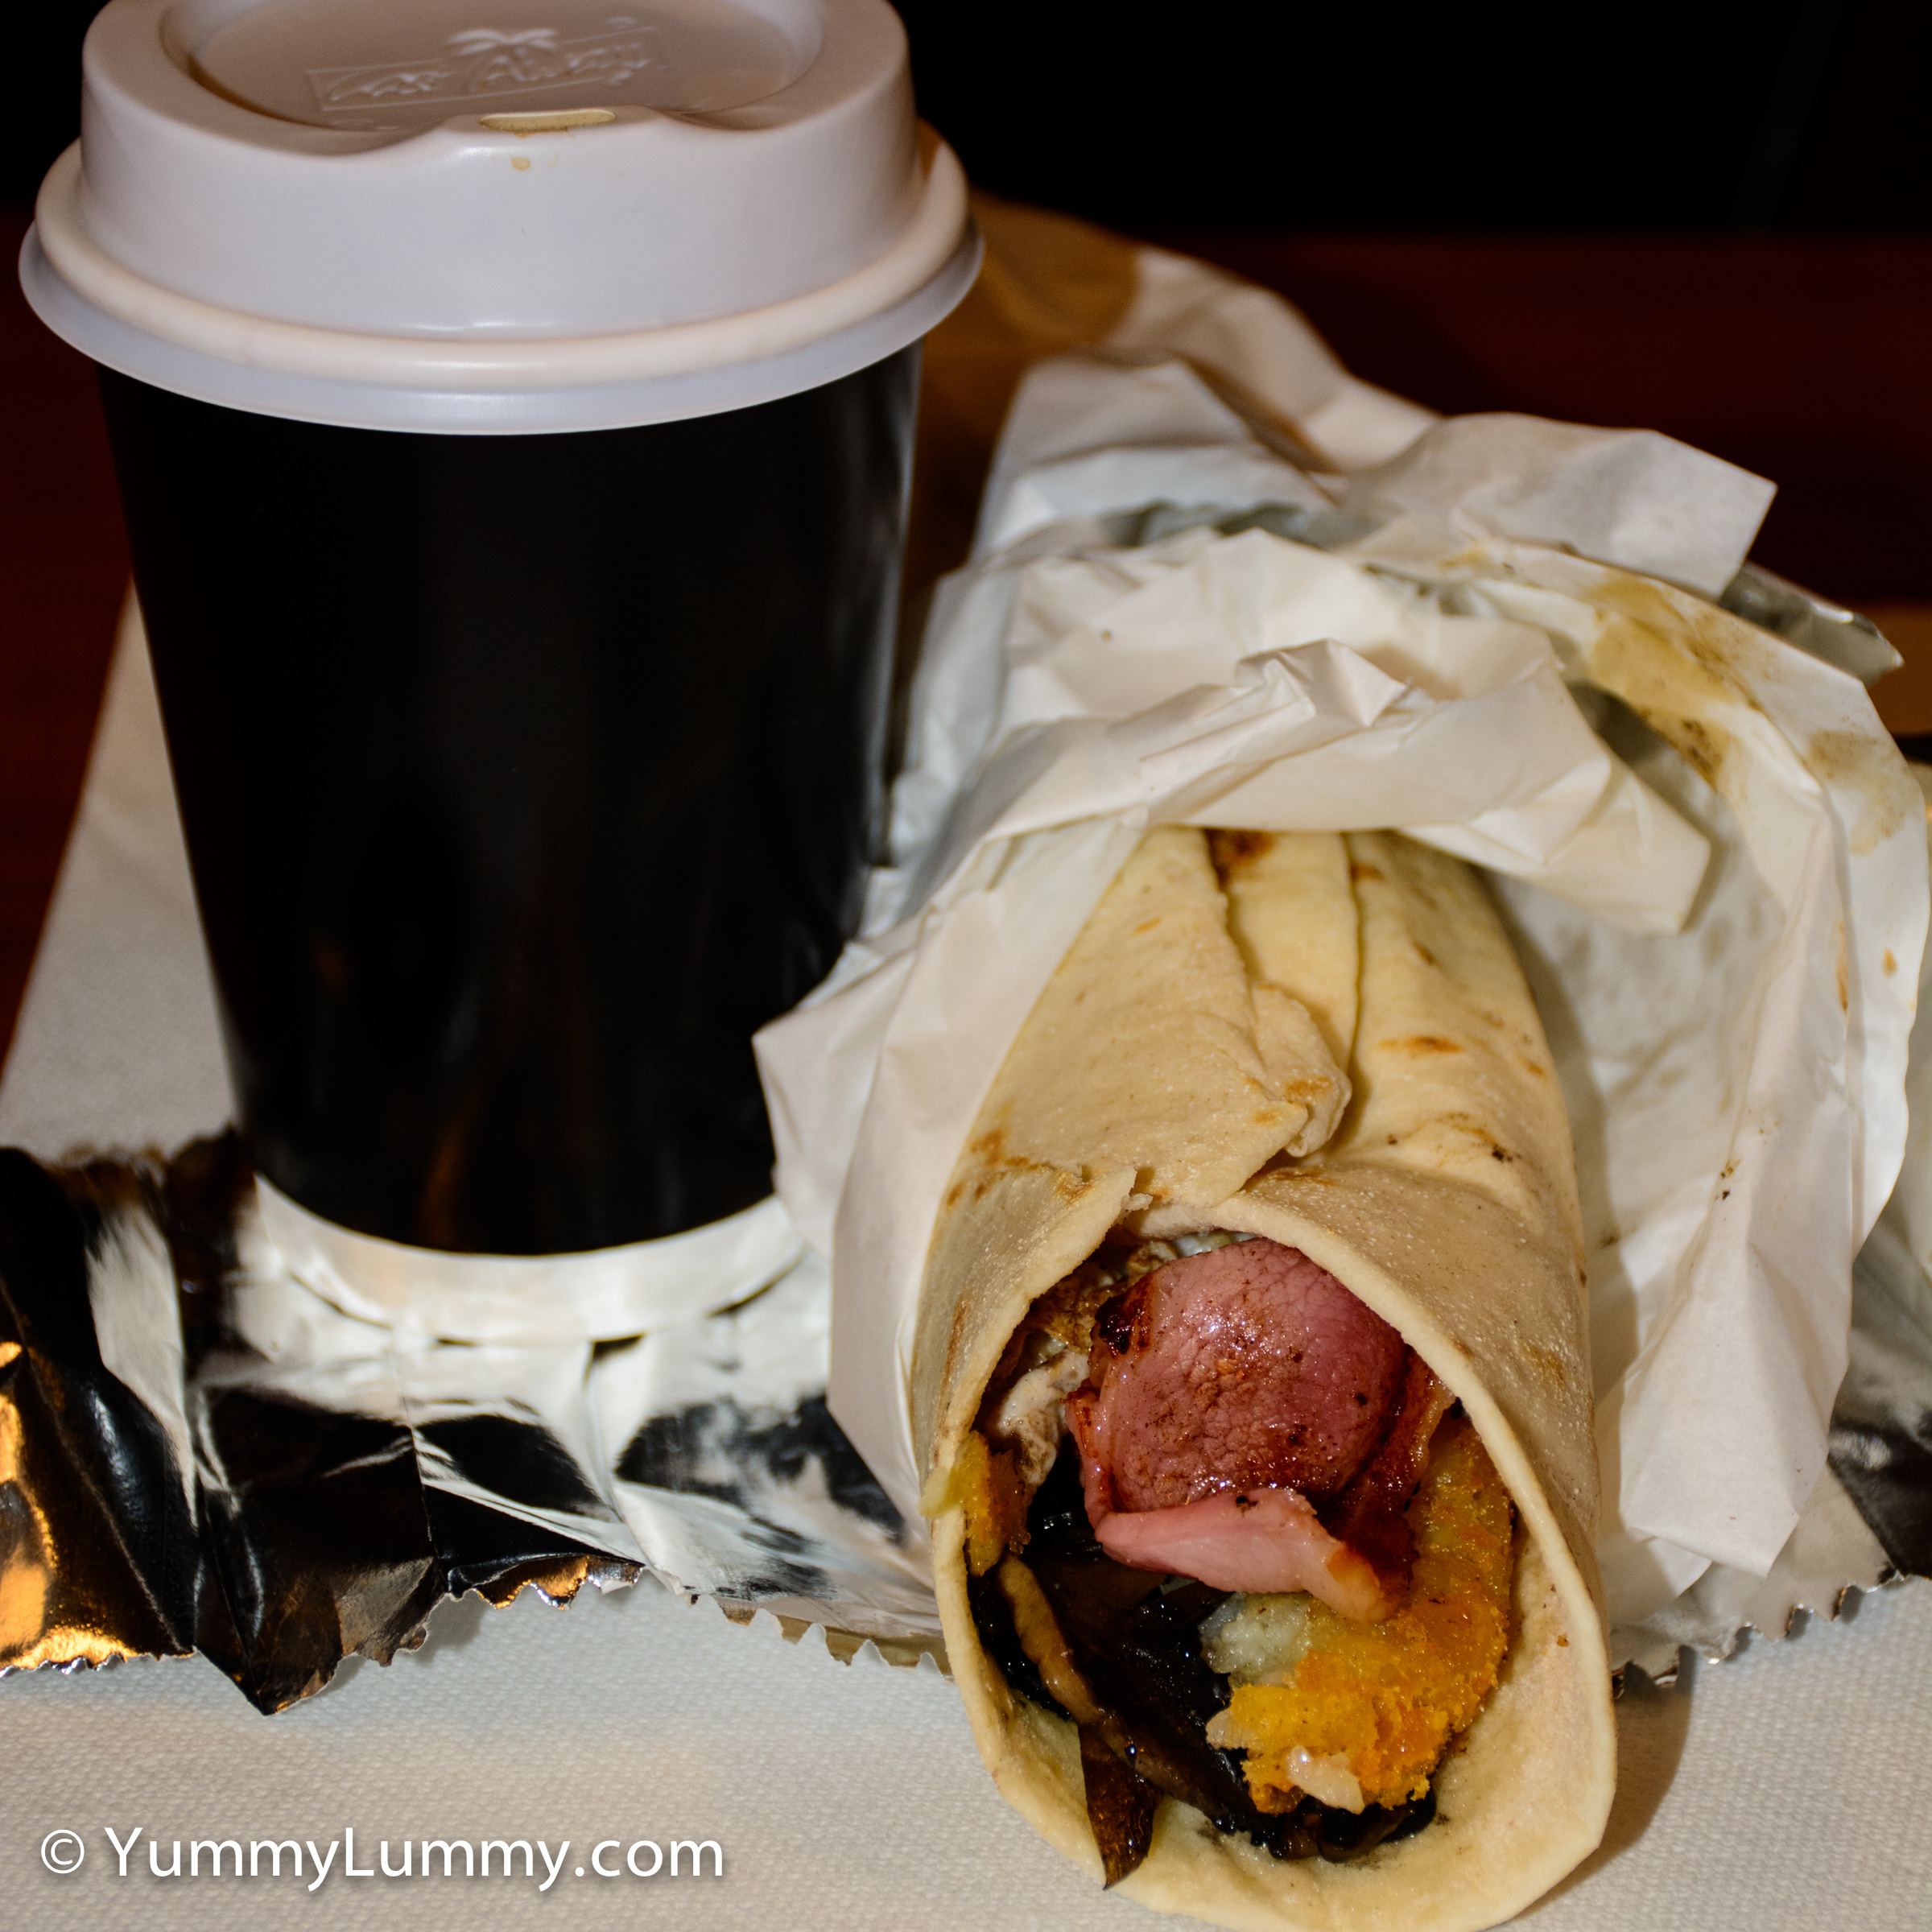 Happy hump day. Takeaway Mavi breakfast wrap and a regular flat white coffee.